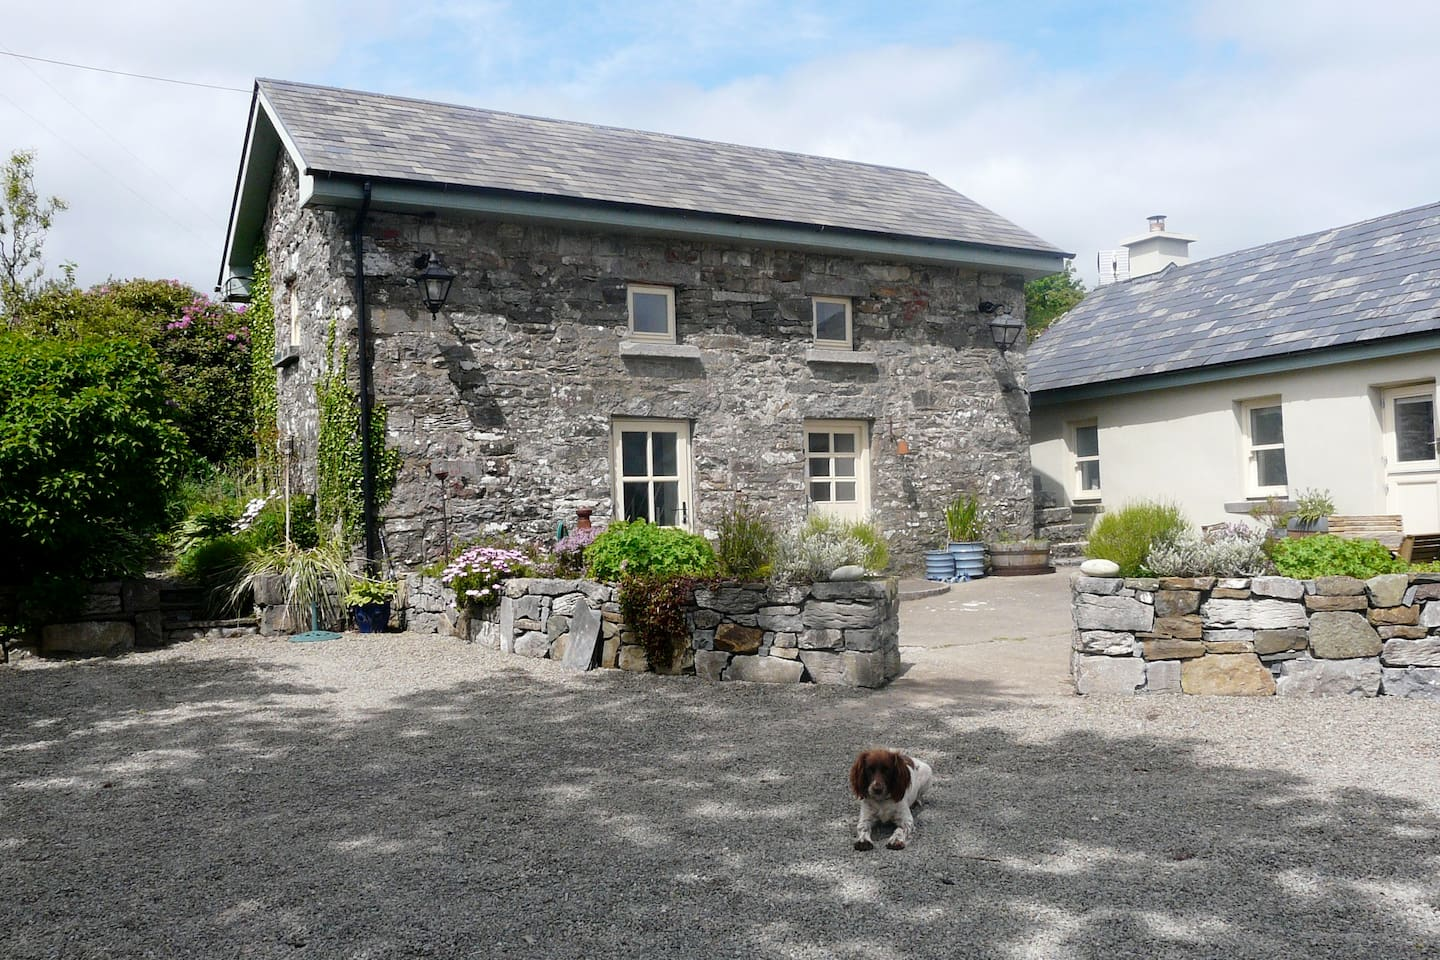 The Old Stone Barn (and Coco)